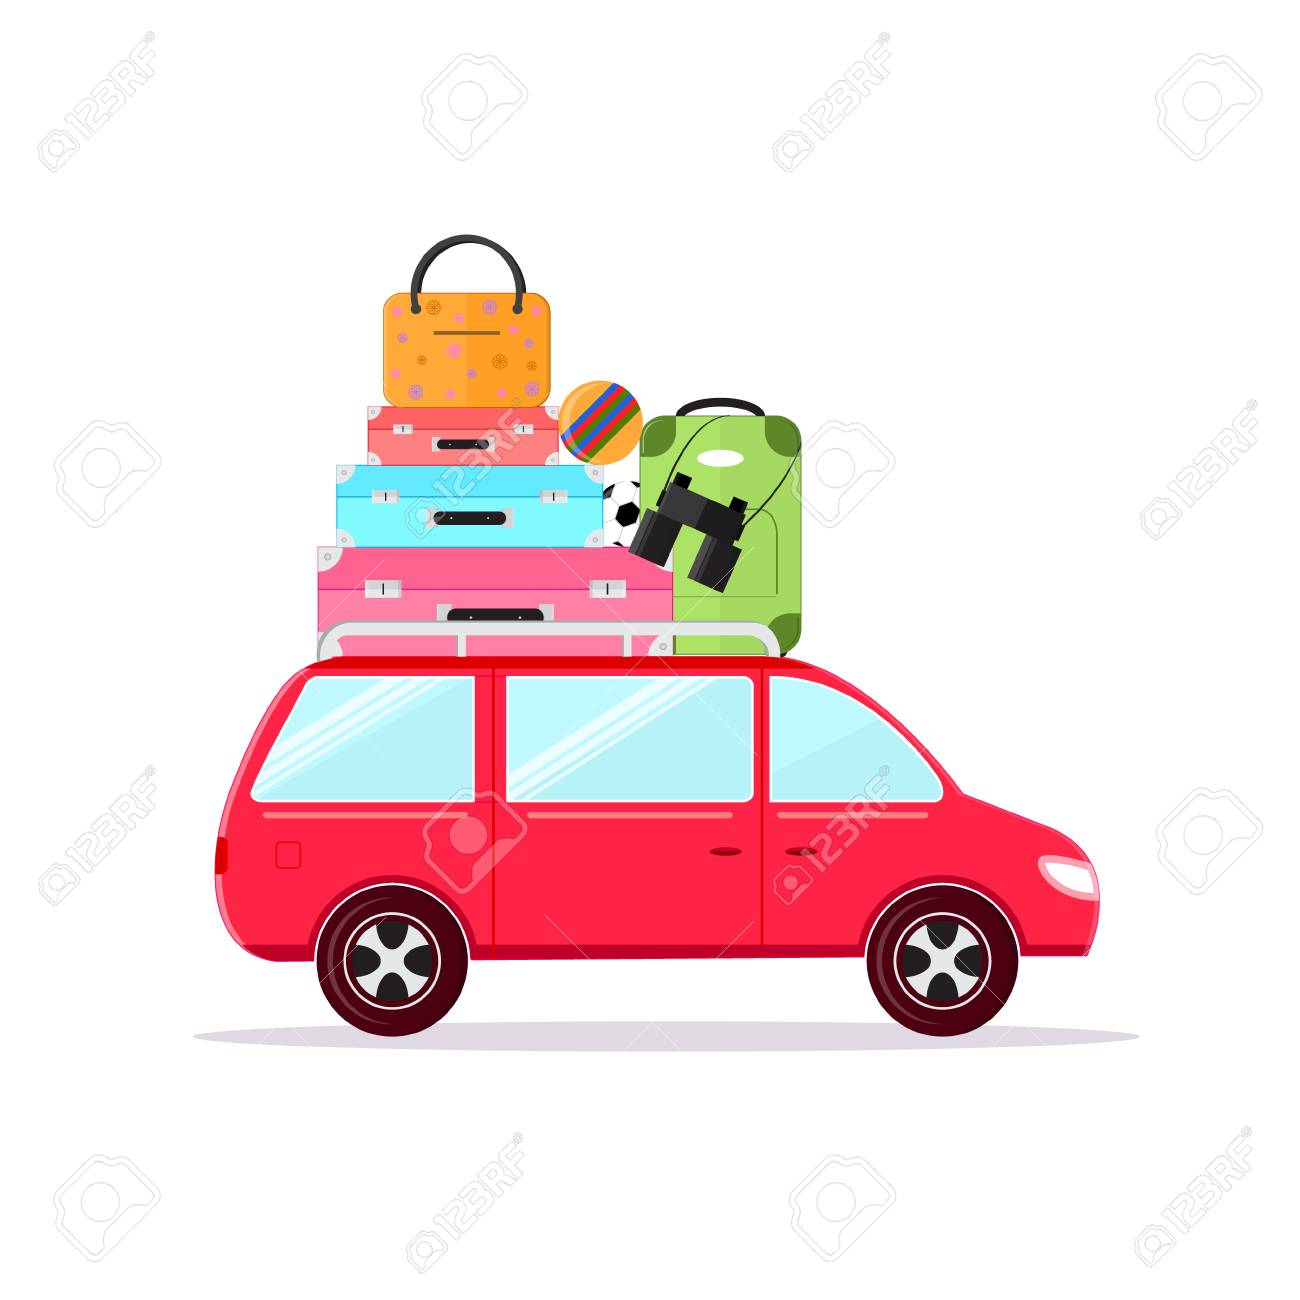 Travel Car Concept Tourism And Vacation Together Flat Design Style Vector Illustration Stock